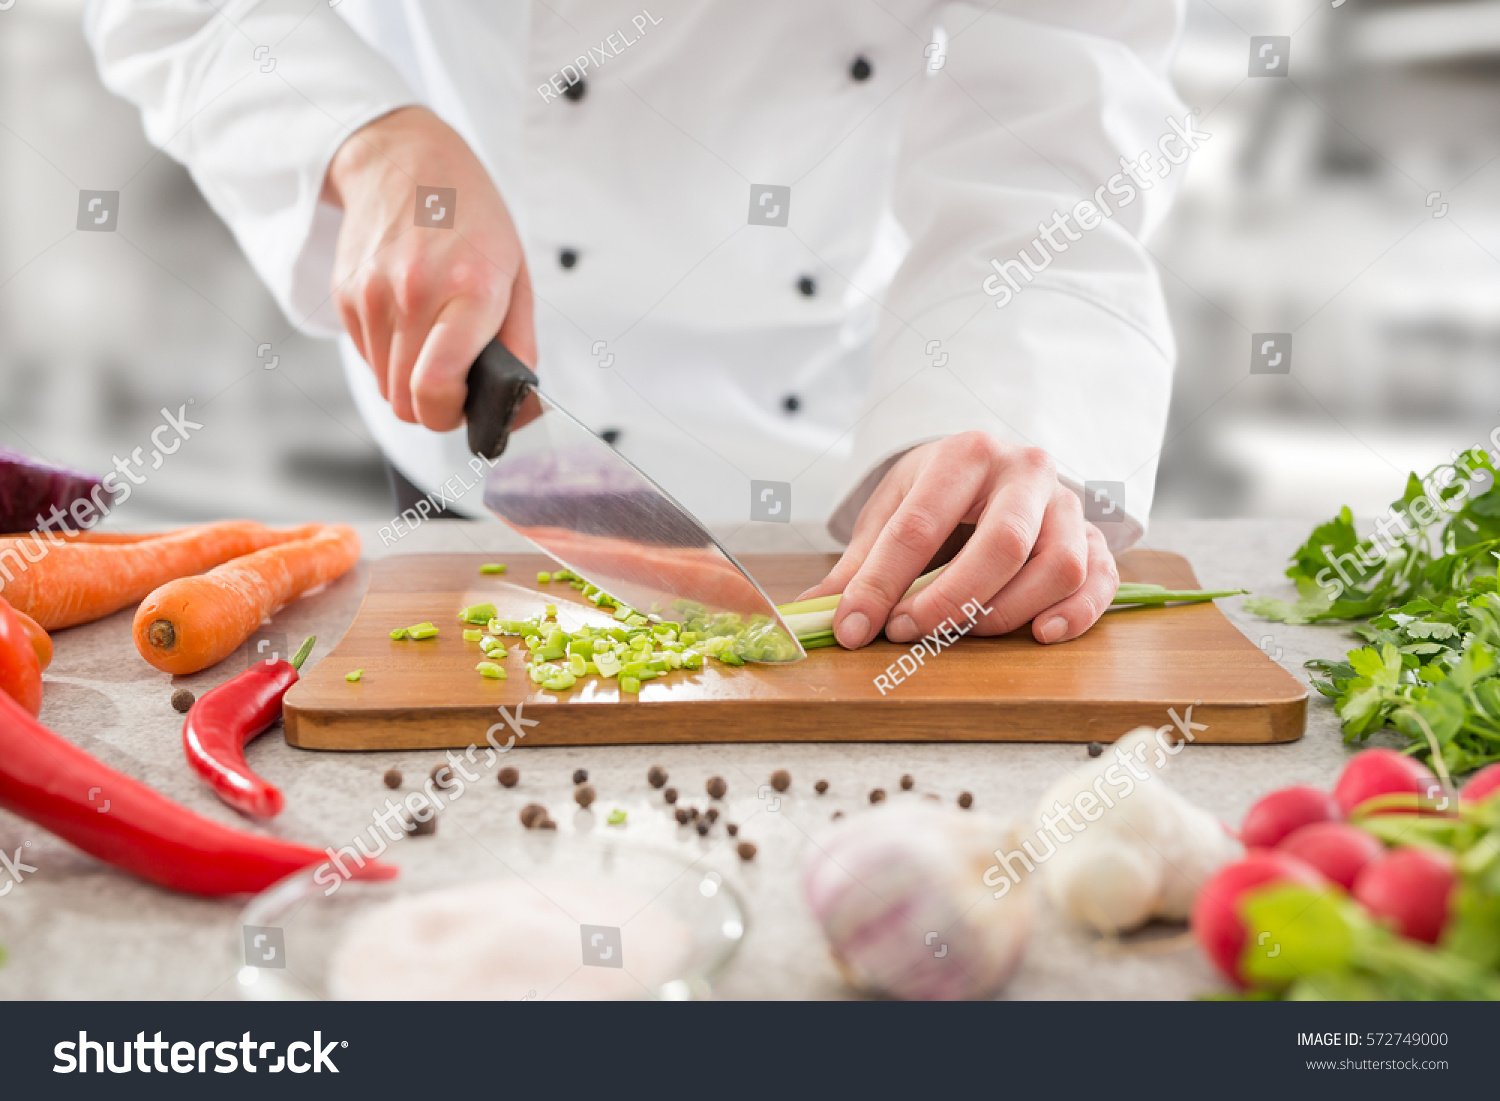 Chef Cooking Food Kitchen Restaurant Cutting Stock Photo ...